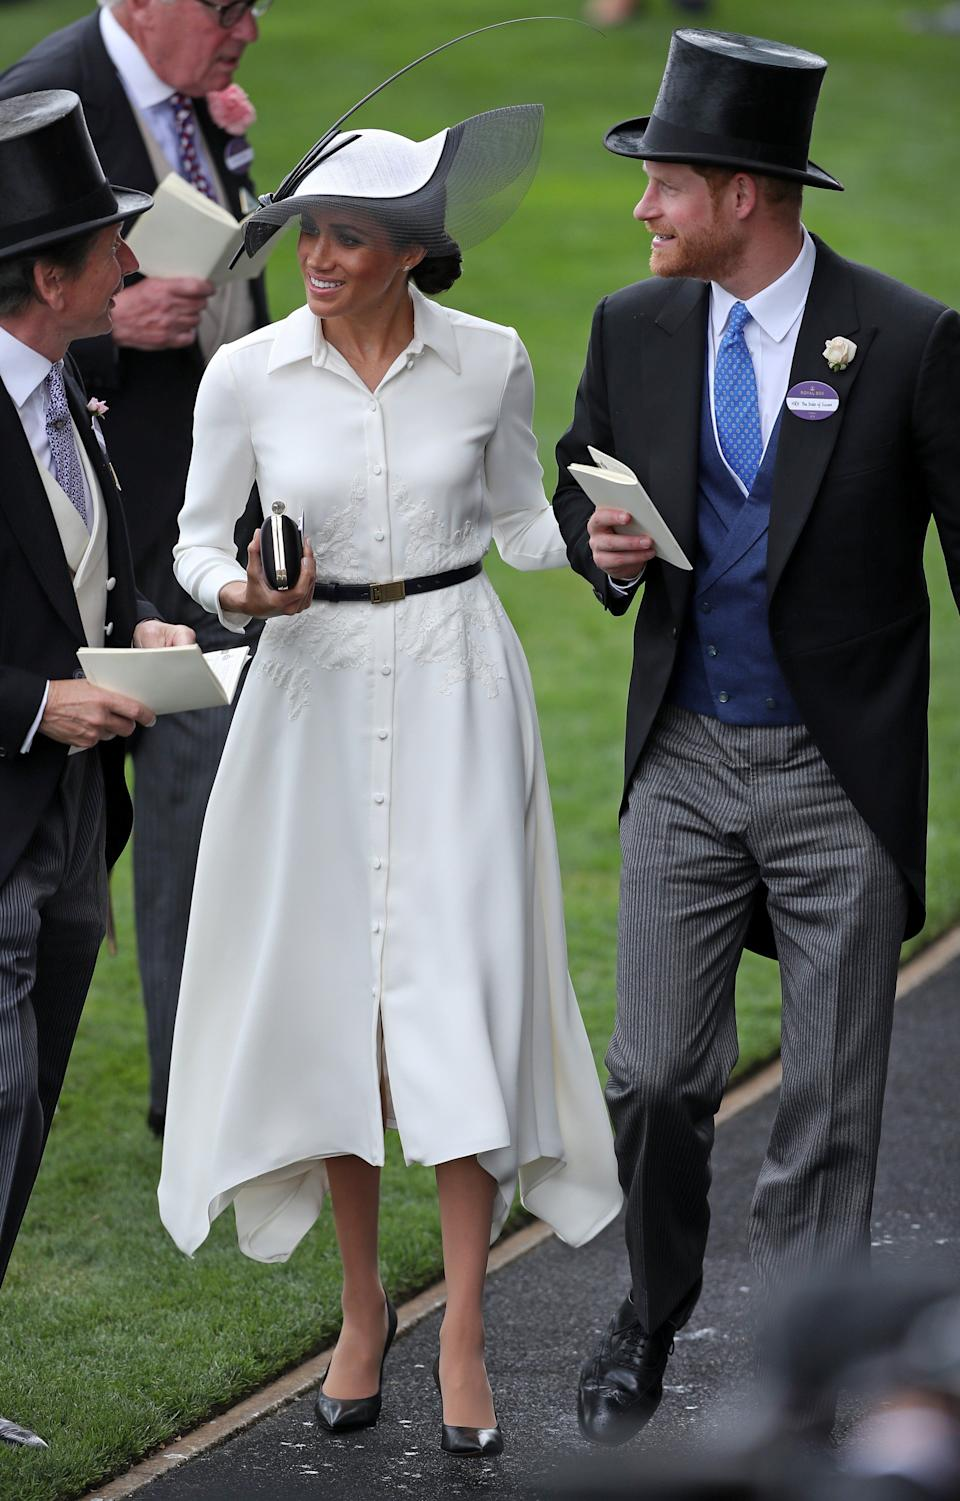 For her debut royal ascot on June 19, 2018, the Duchess chose a Givenchy shirt dress [Photo: Getty]